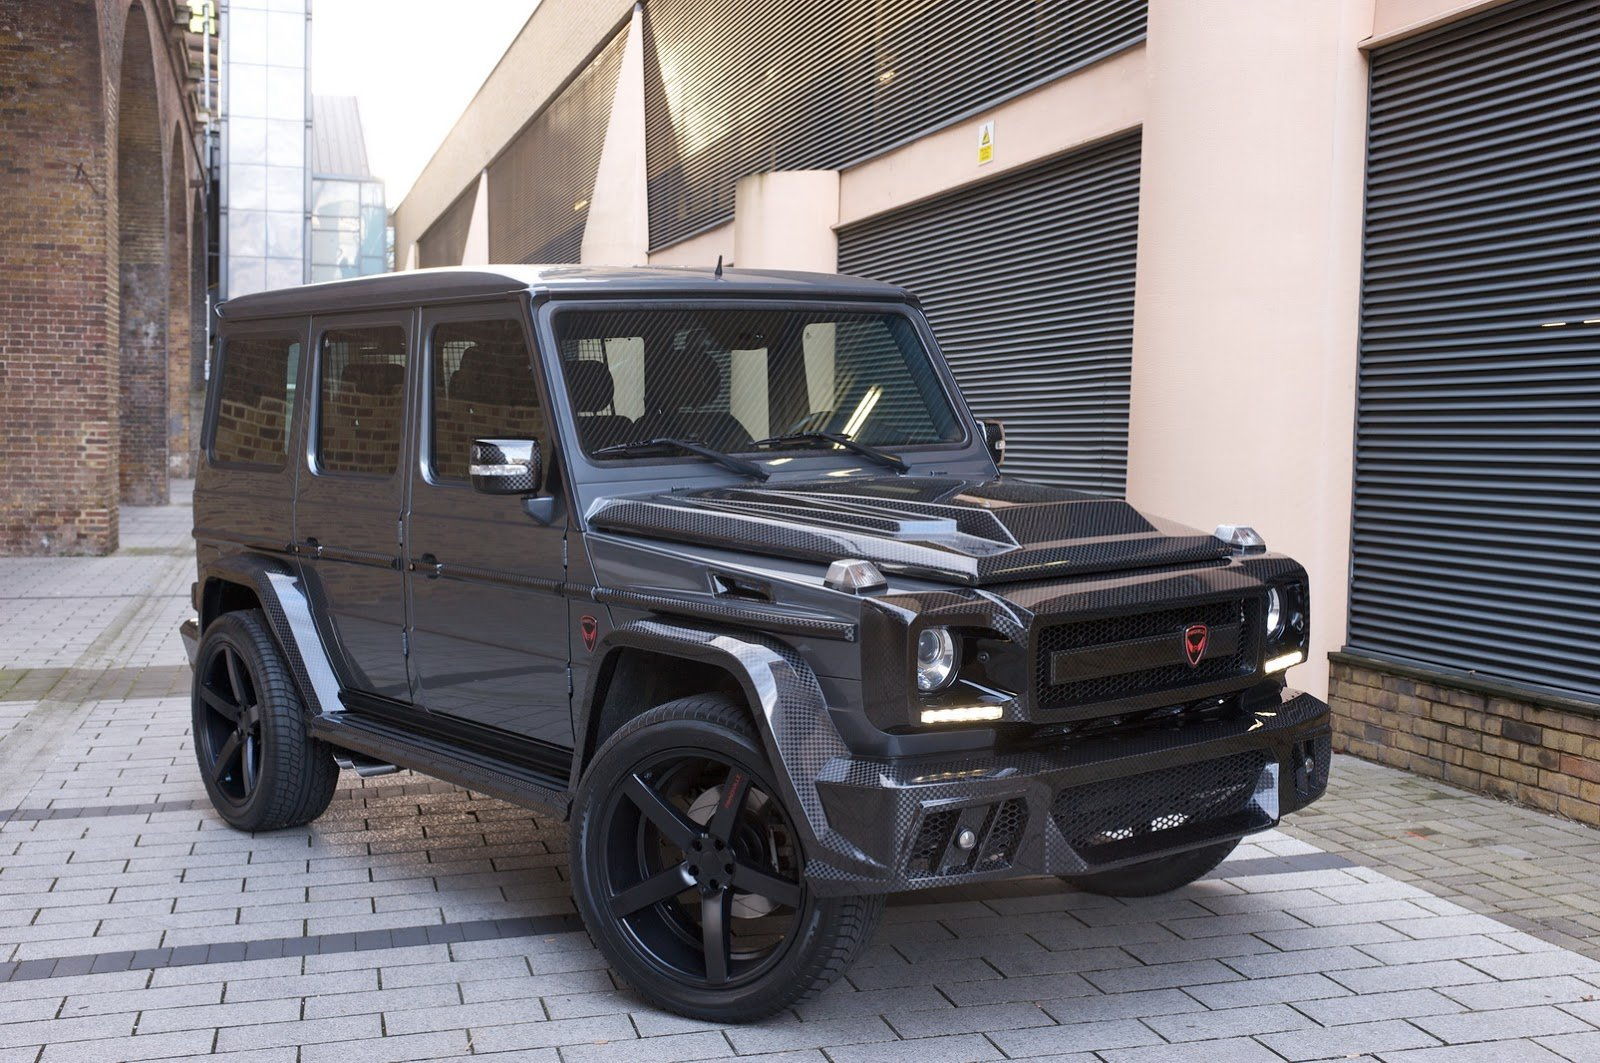 prindiville mercedes g63 amg cars 4x4 tuning wallpaper 1600x1063 680649 wallpaperup. Black Bedroom Furniture Sets. Home Design Ideas